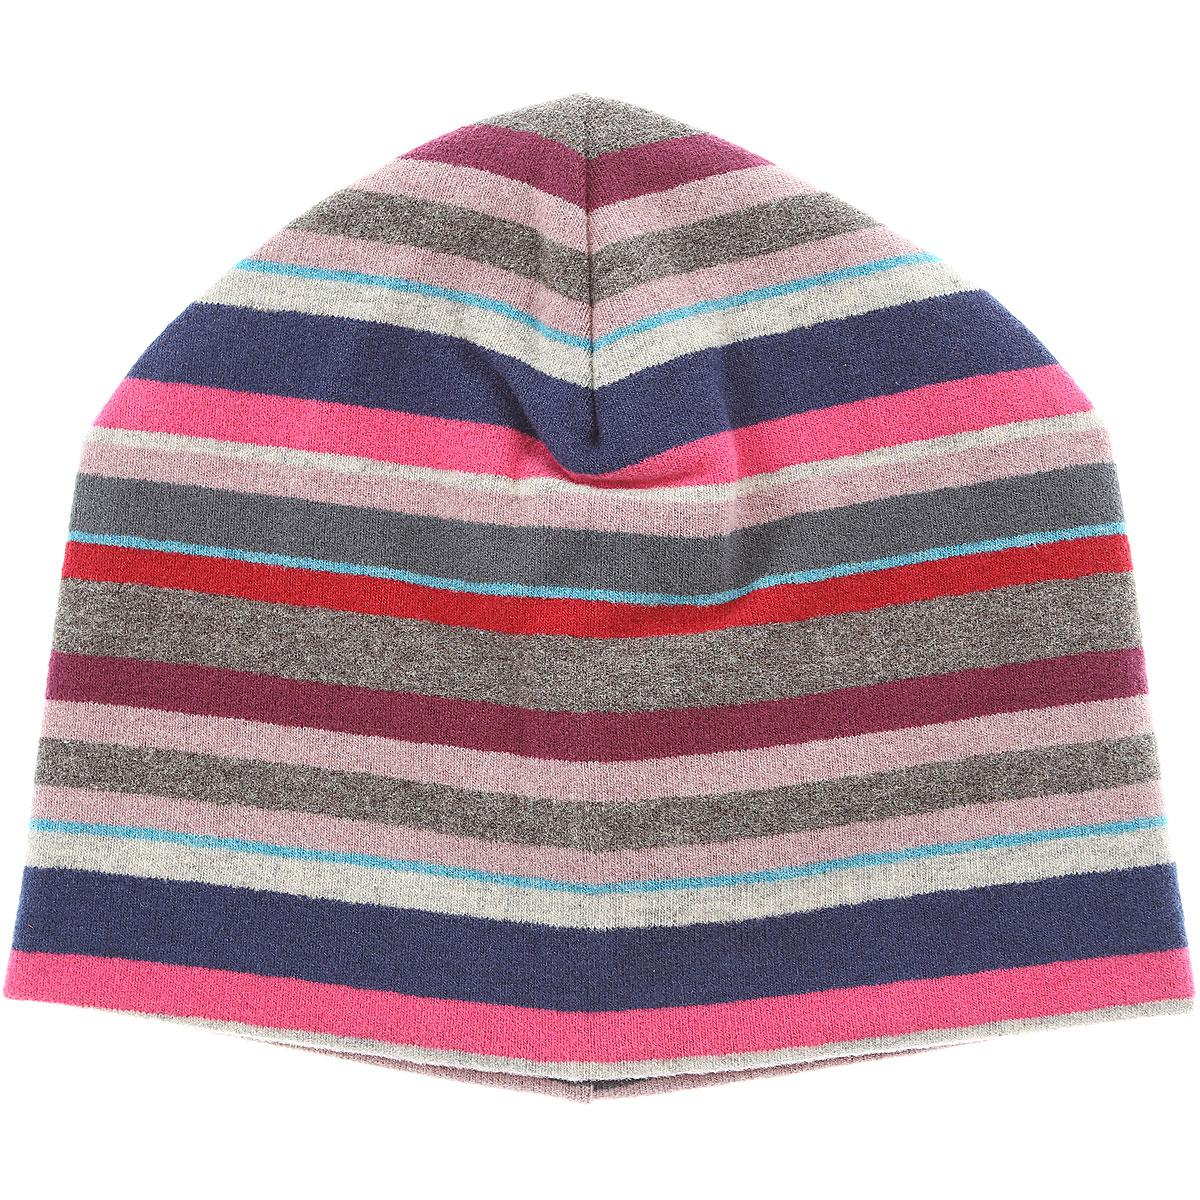 Lyst - Gallo Baby Hats For Girls On Sale in Gray acc19d1f4dcb